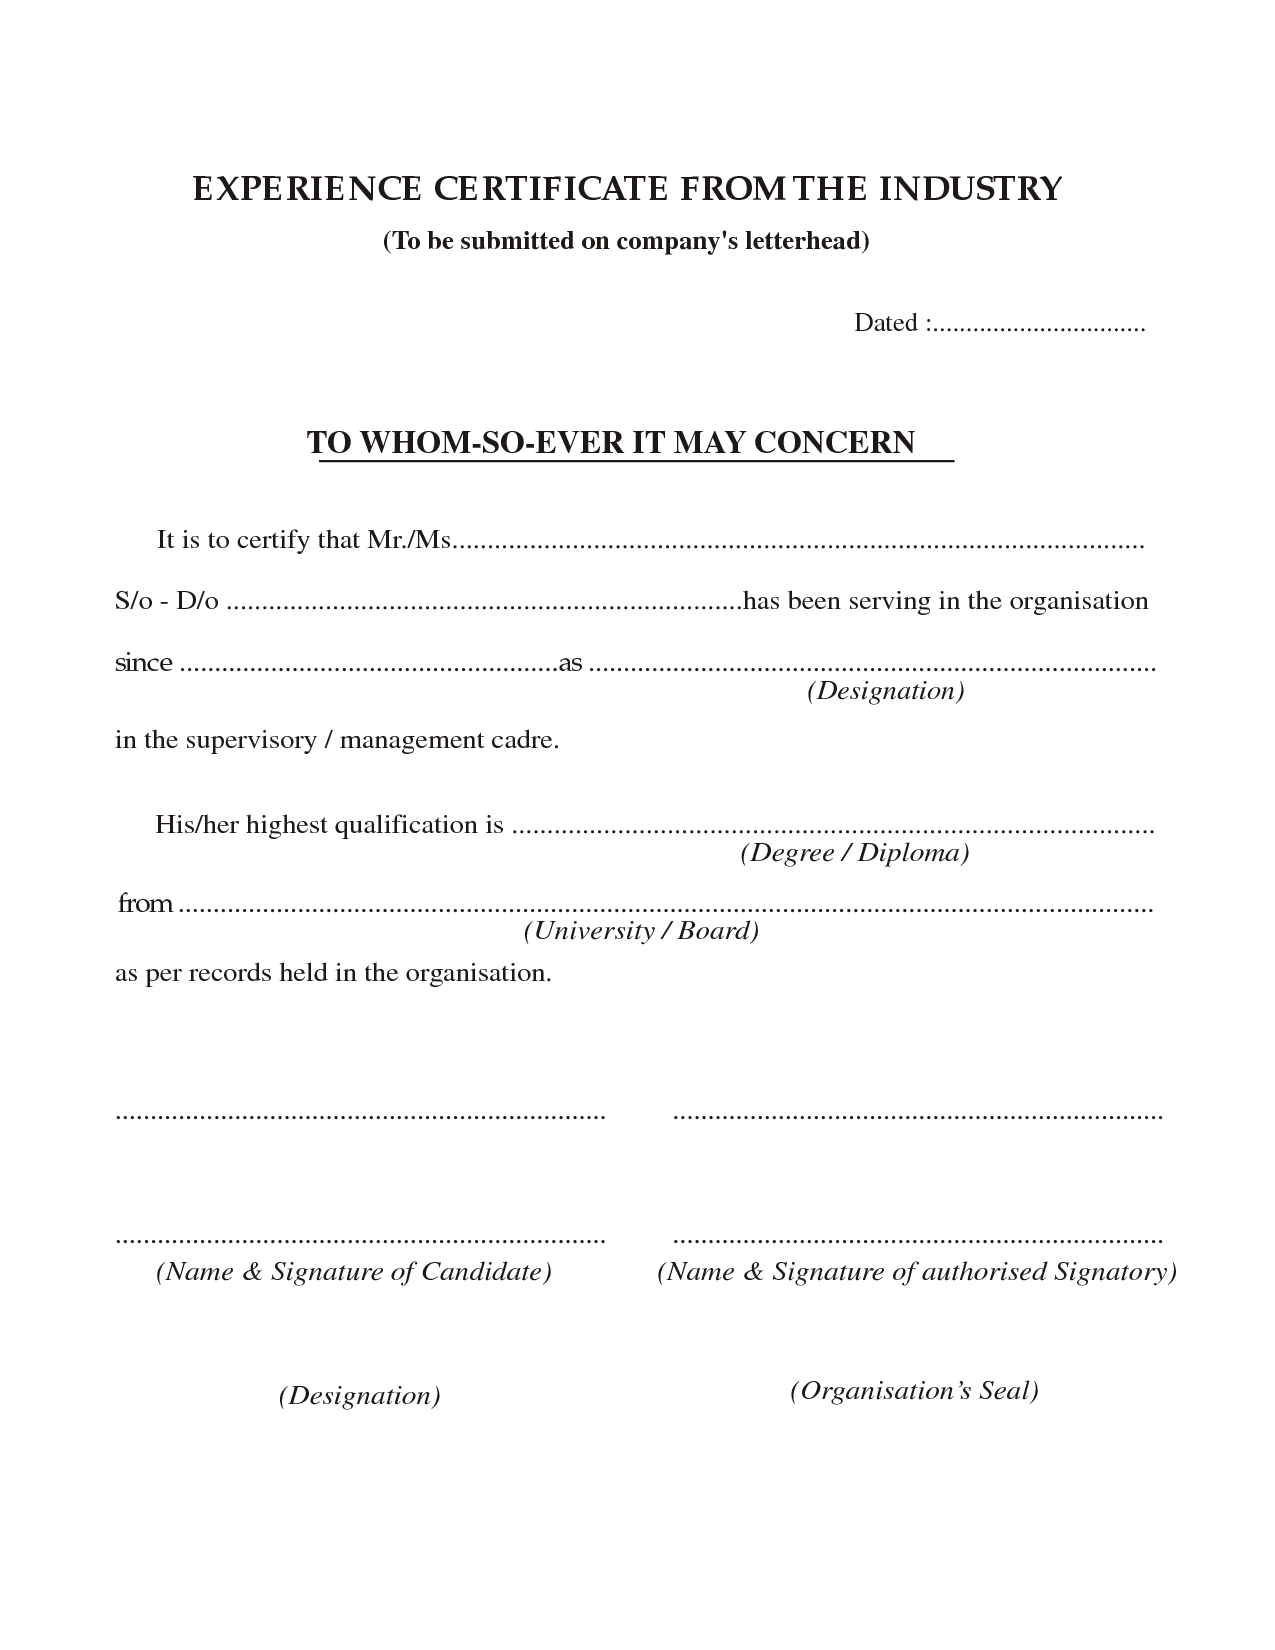 Application For No Objection Certificate For Job Endearing Job Experience Certificate Format  Job  Pinterest  Certificate